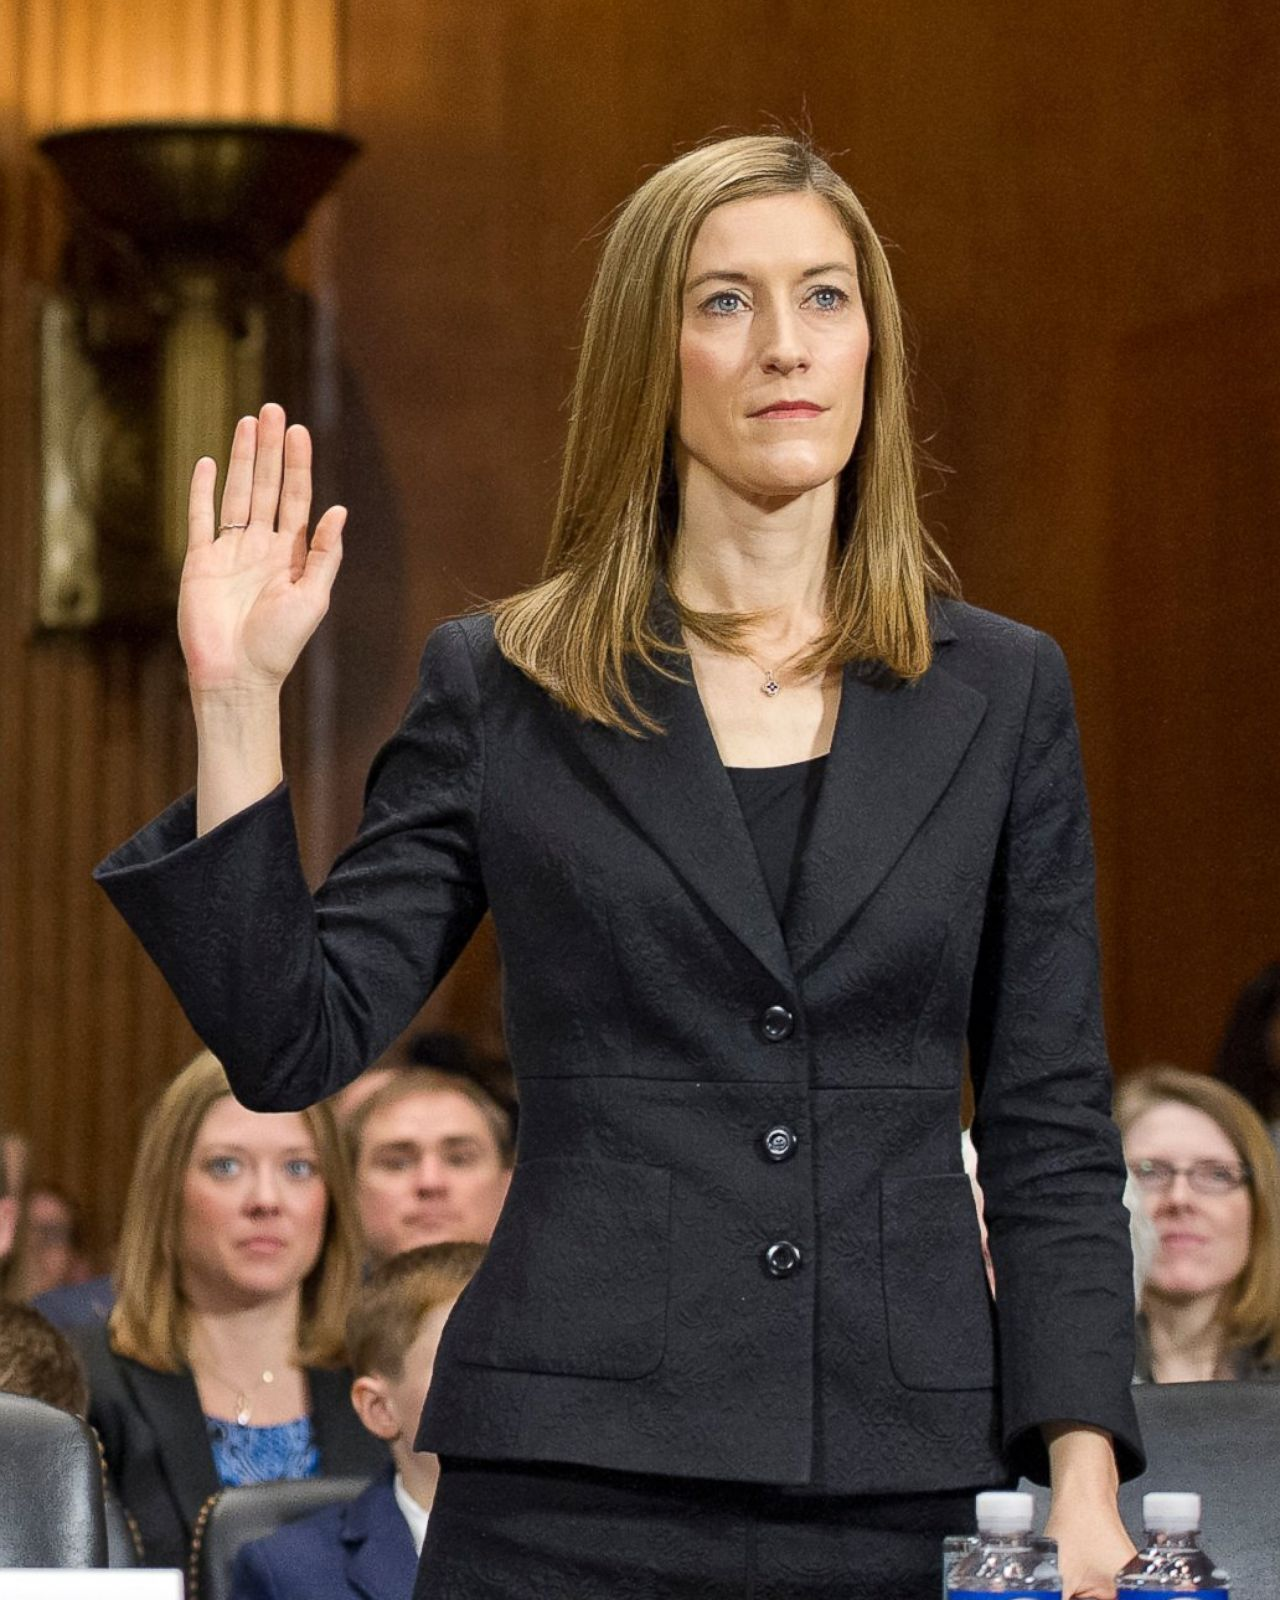 Image result for PHOTOS OF RACHEL BRAND AT doj